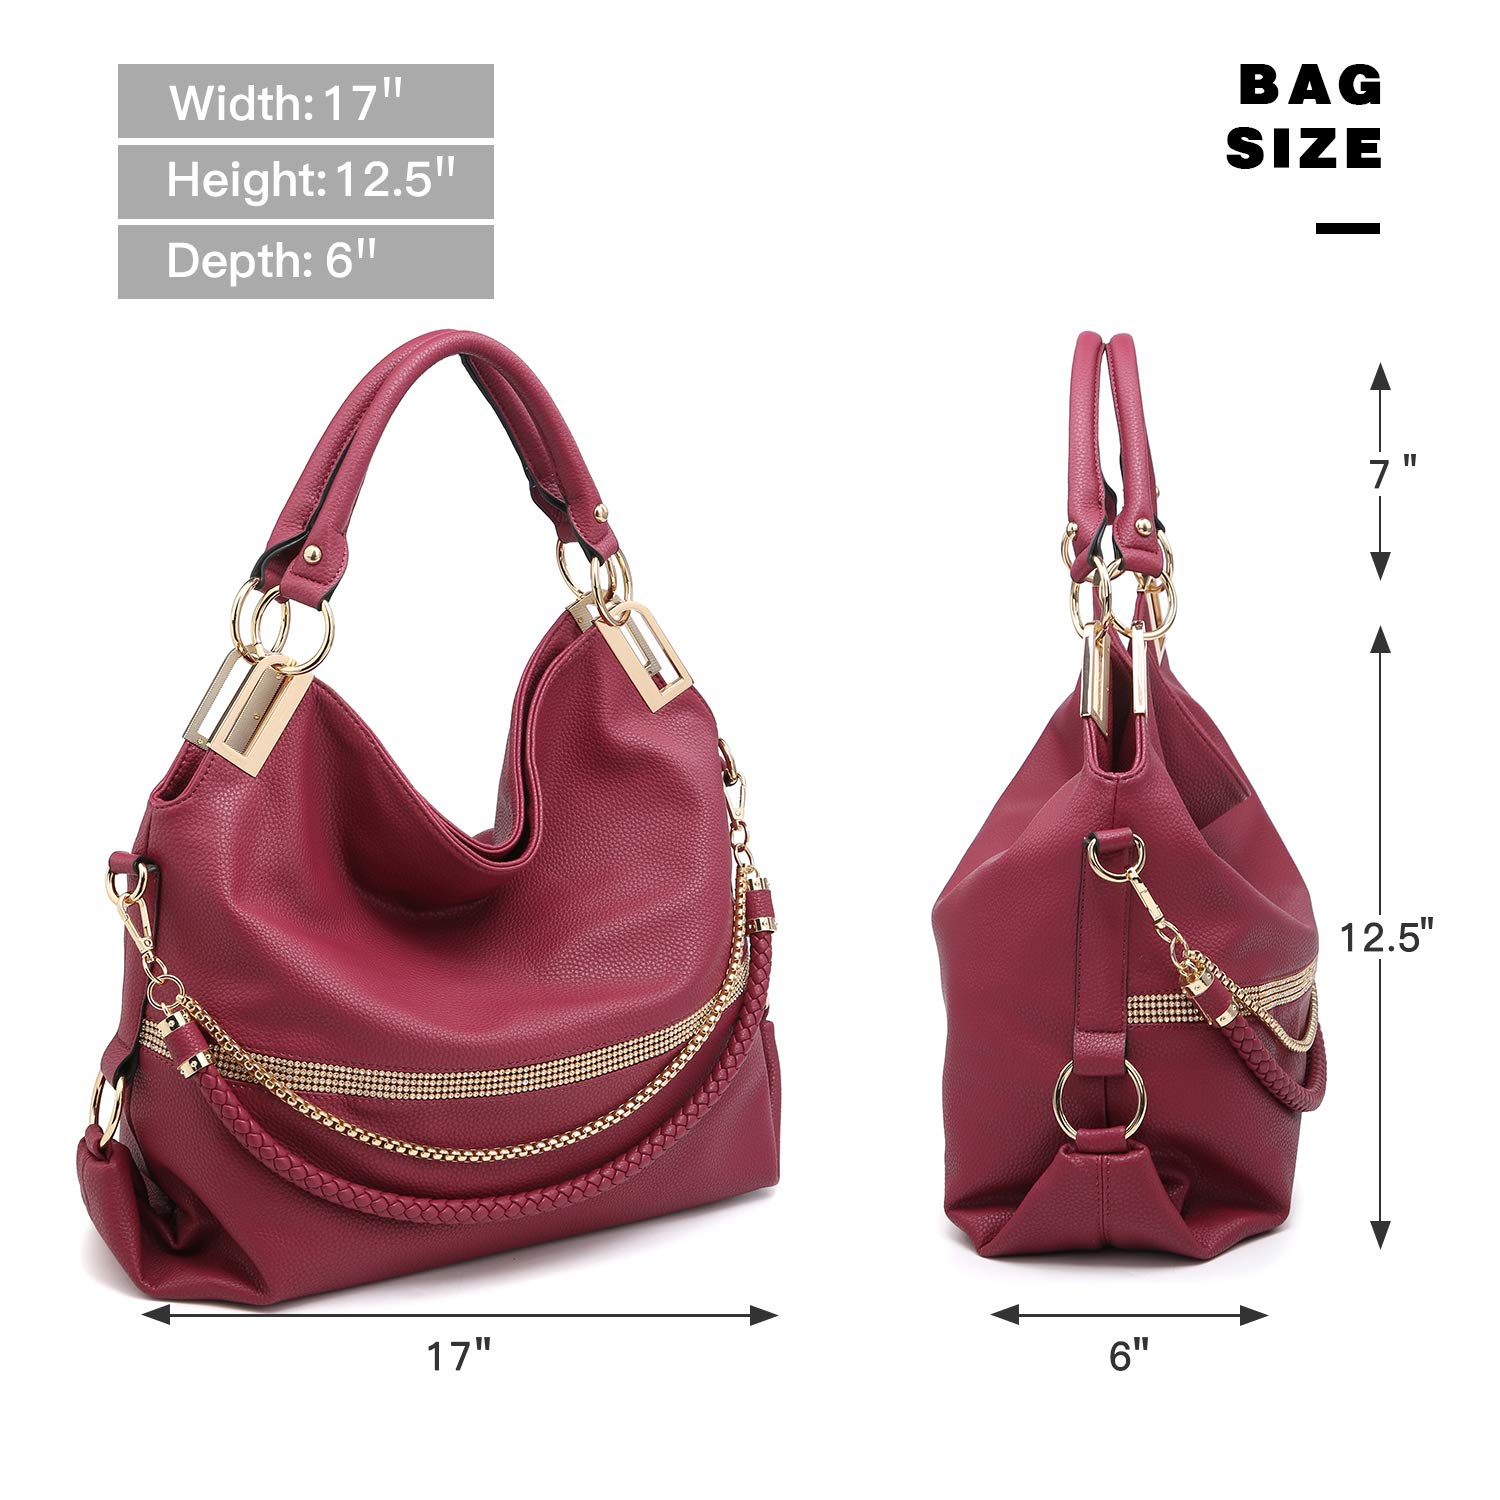 c772ba757546 Dasein Women s Classic Large Hobo Bag Rhinestone Chain Shoulder Bag Top  Handle Purse KC-XL-21-7350-BG  1541013300-320164  -  25.73